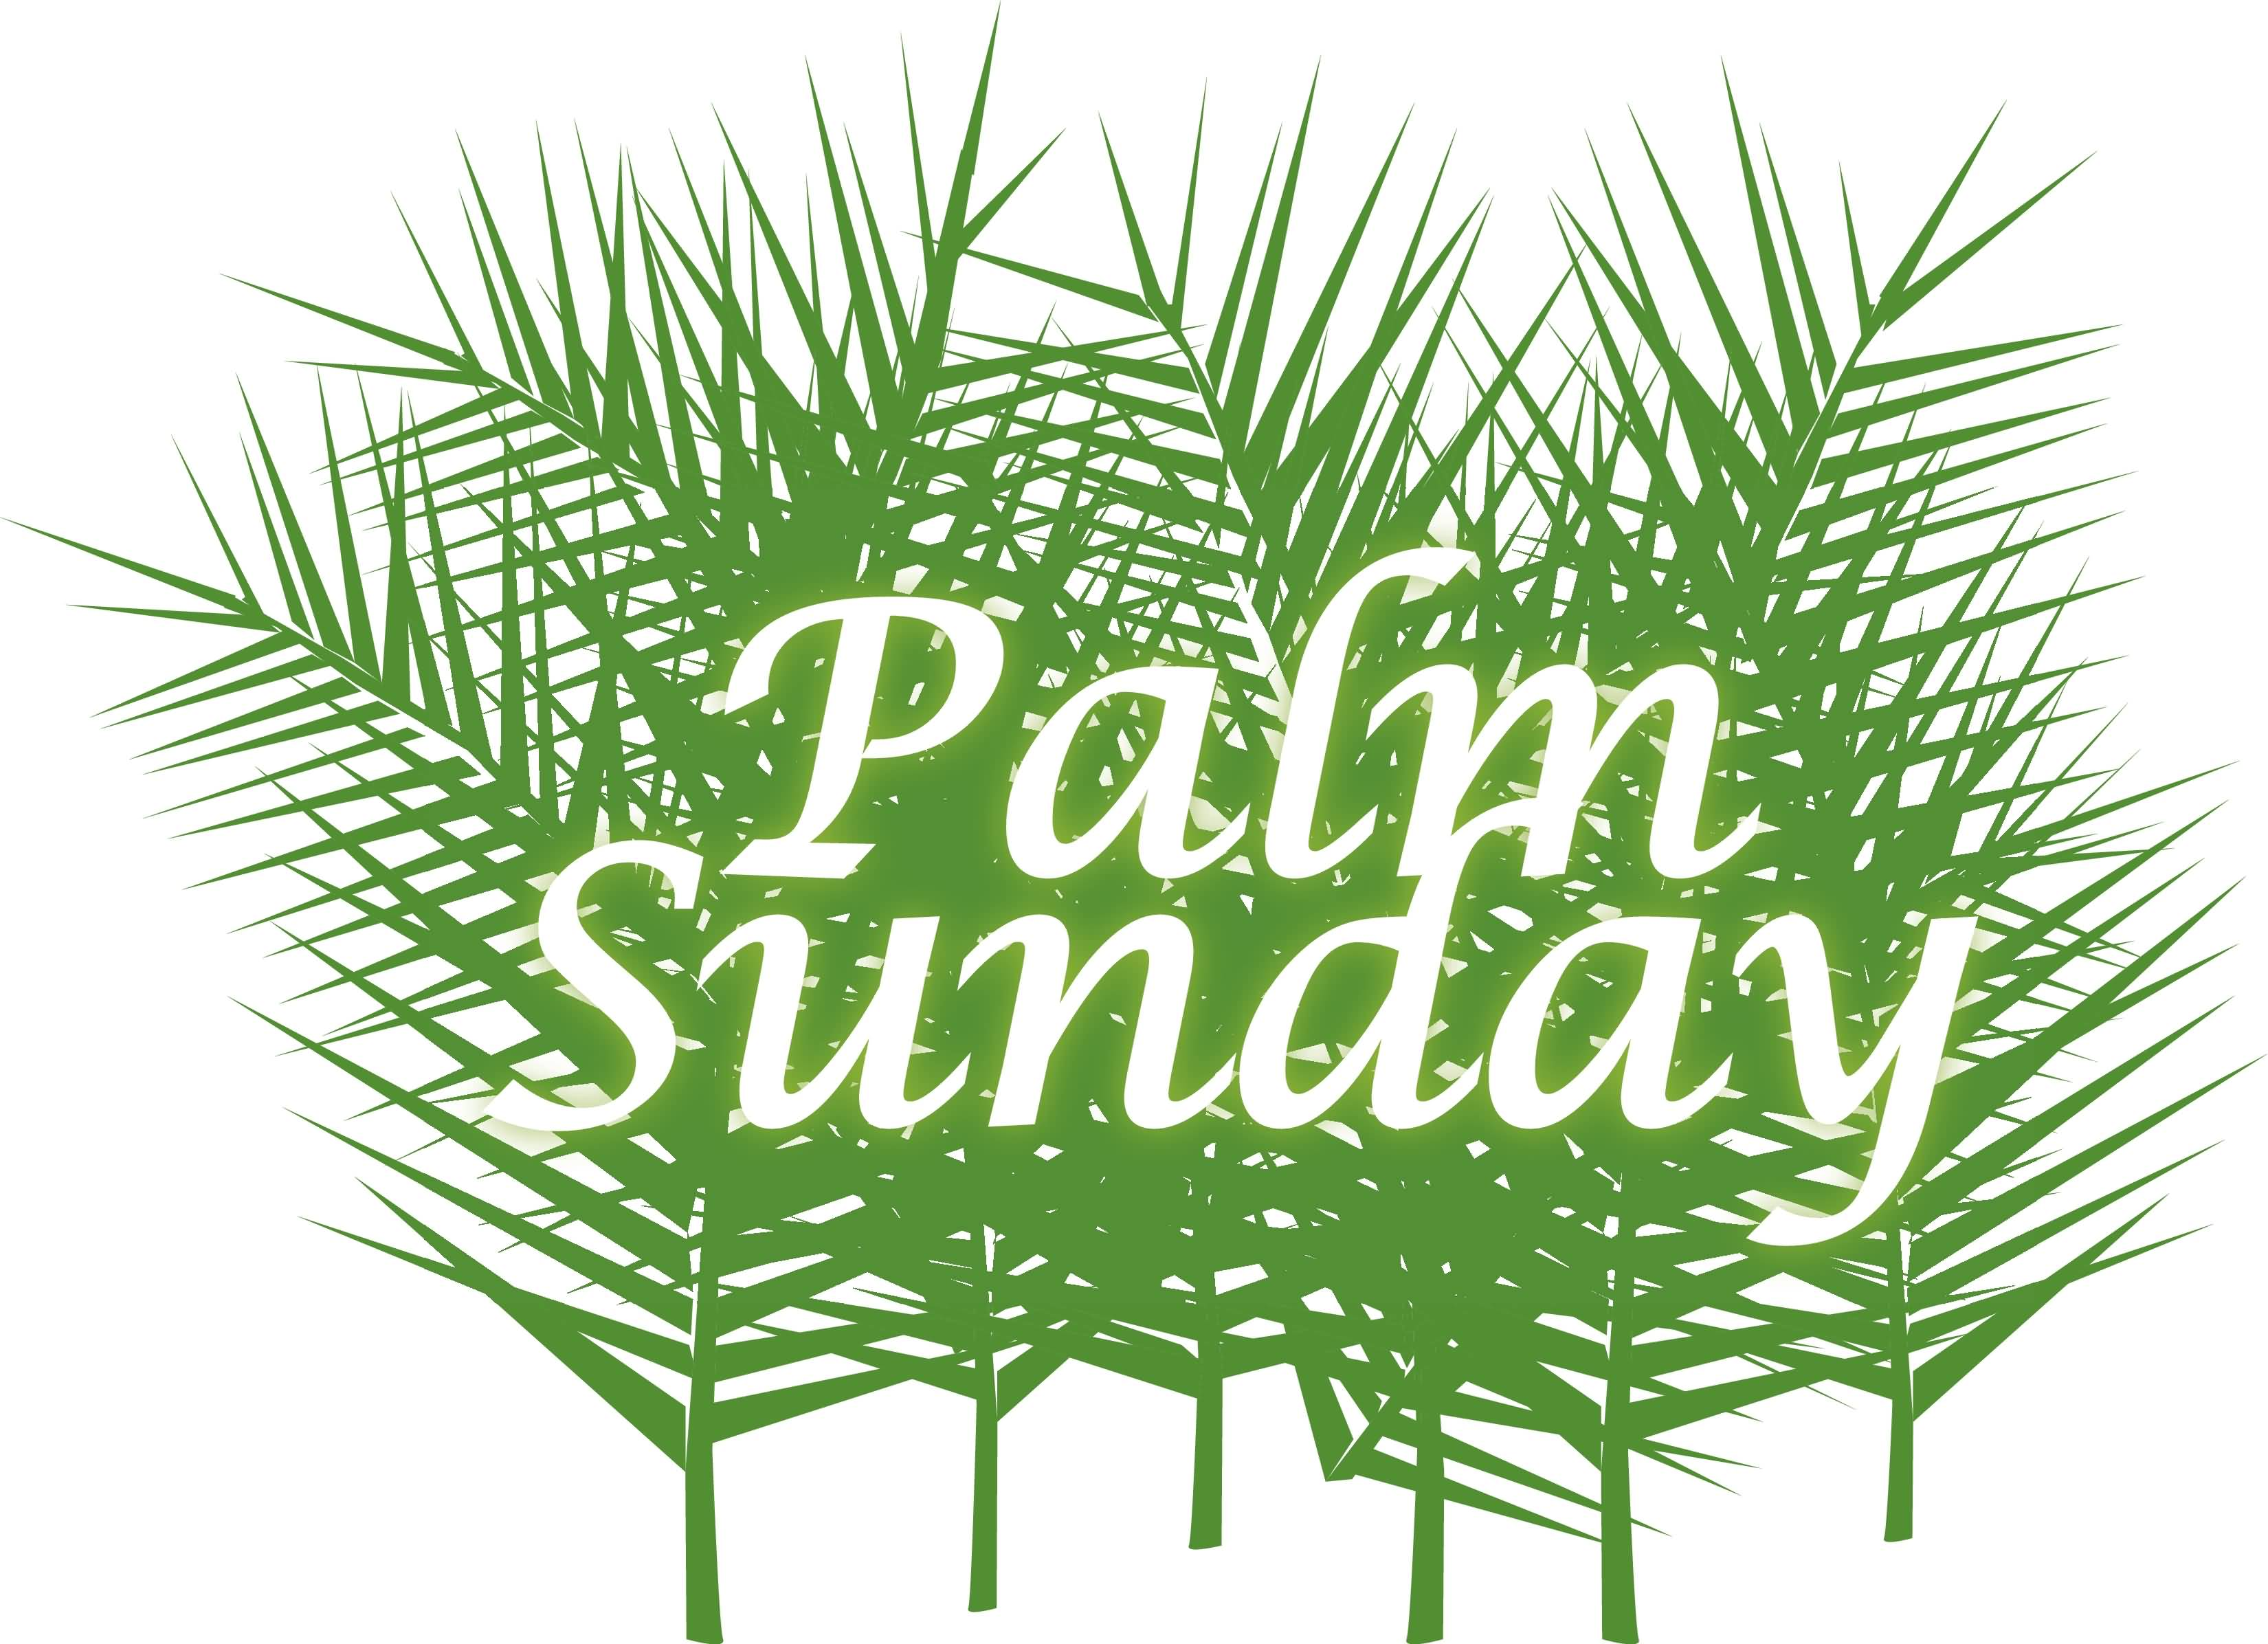 55 most adorable palm sunday 2017 wish pictures and images palm sunday hosanna to the king of kings m4hsunfo